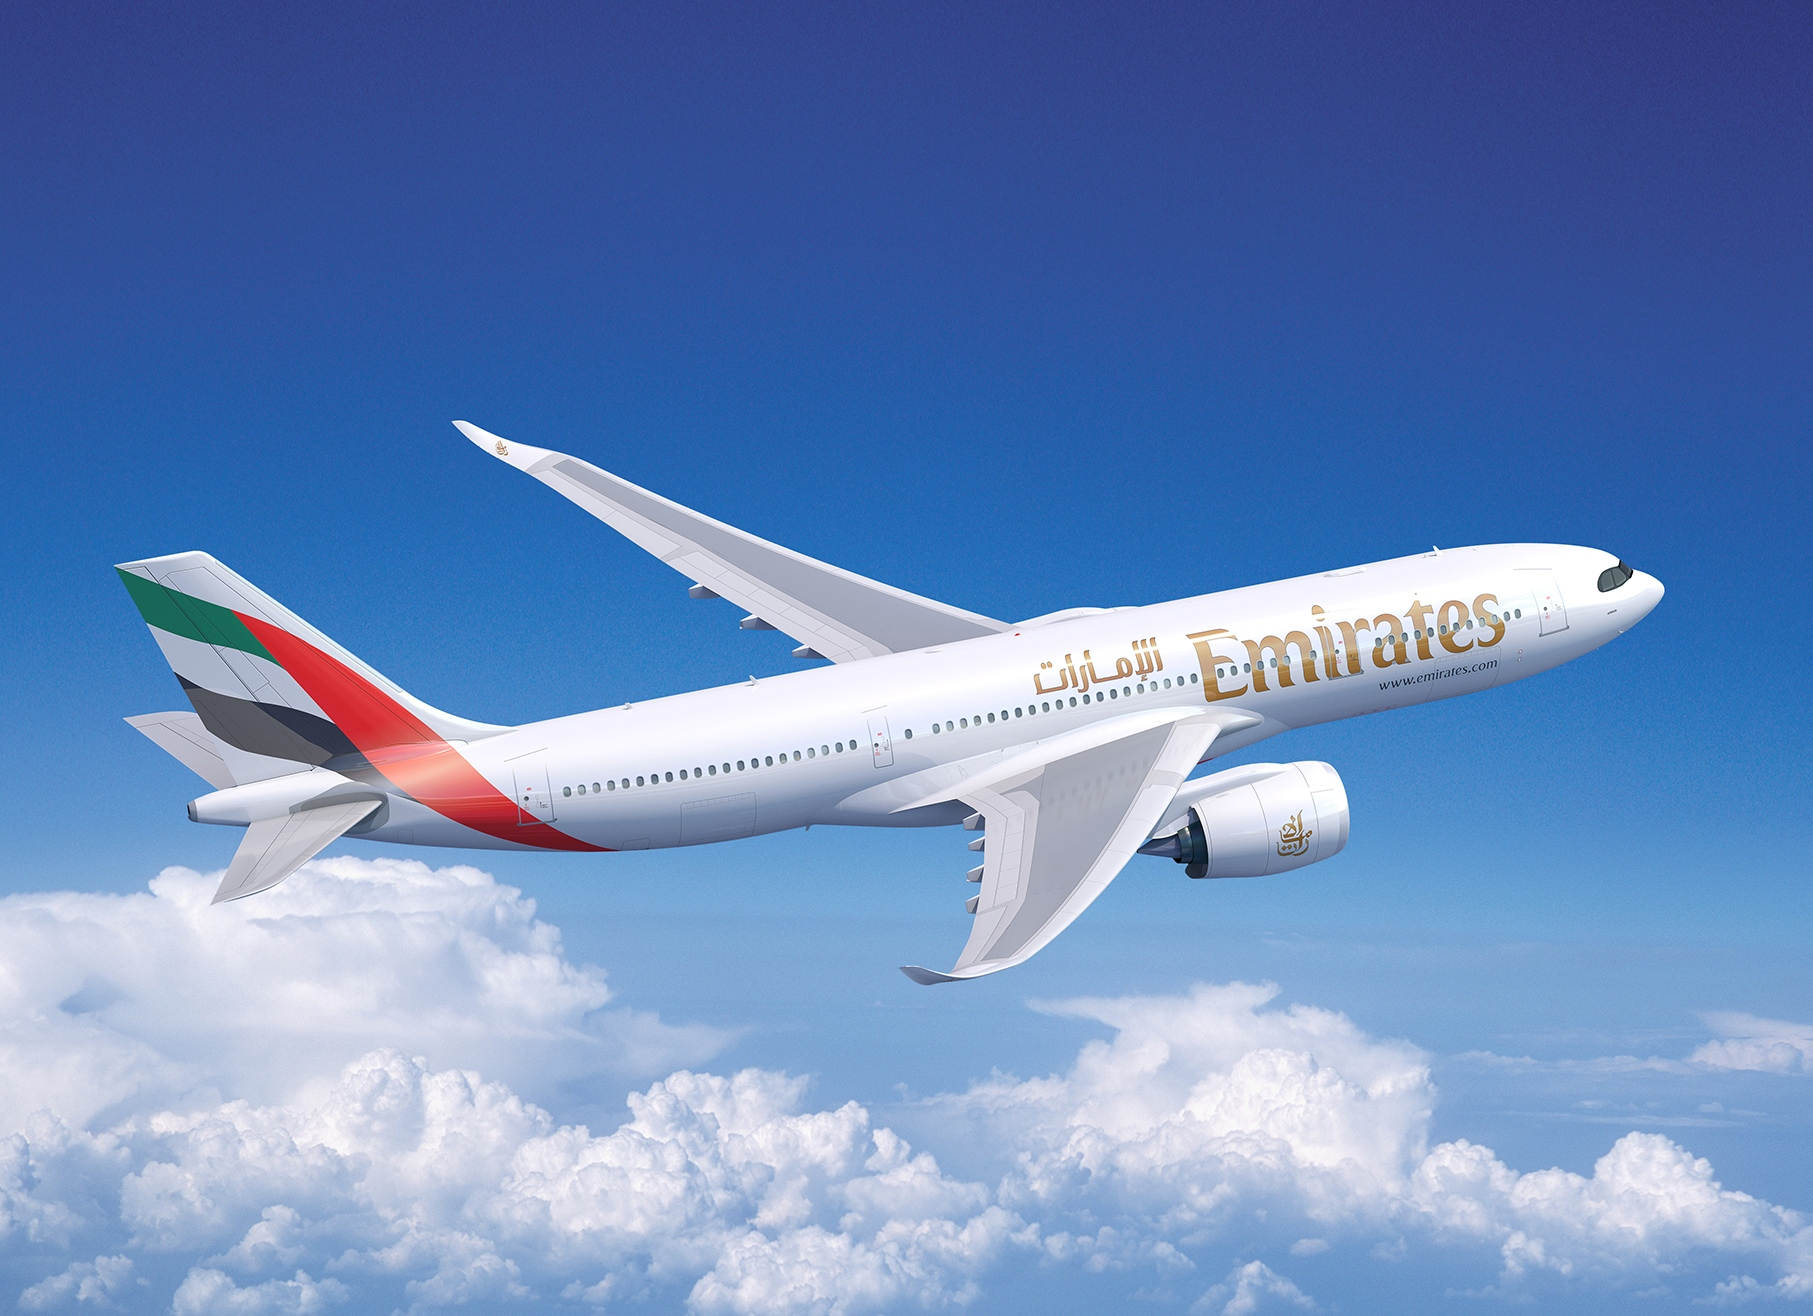 Emirates signs deal for 40 Airbus A330-900s and 30 A350-900s